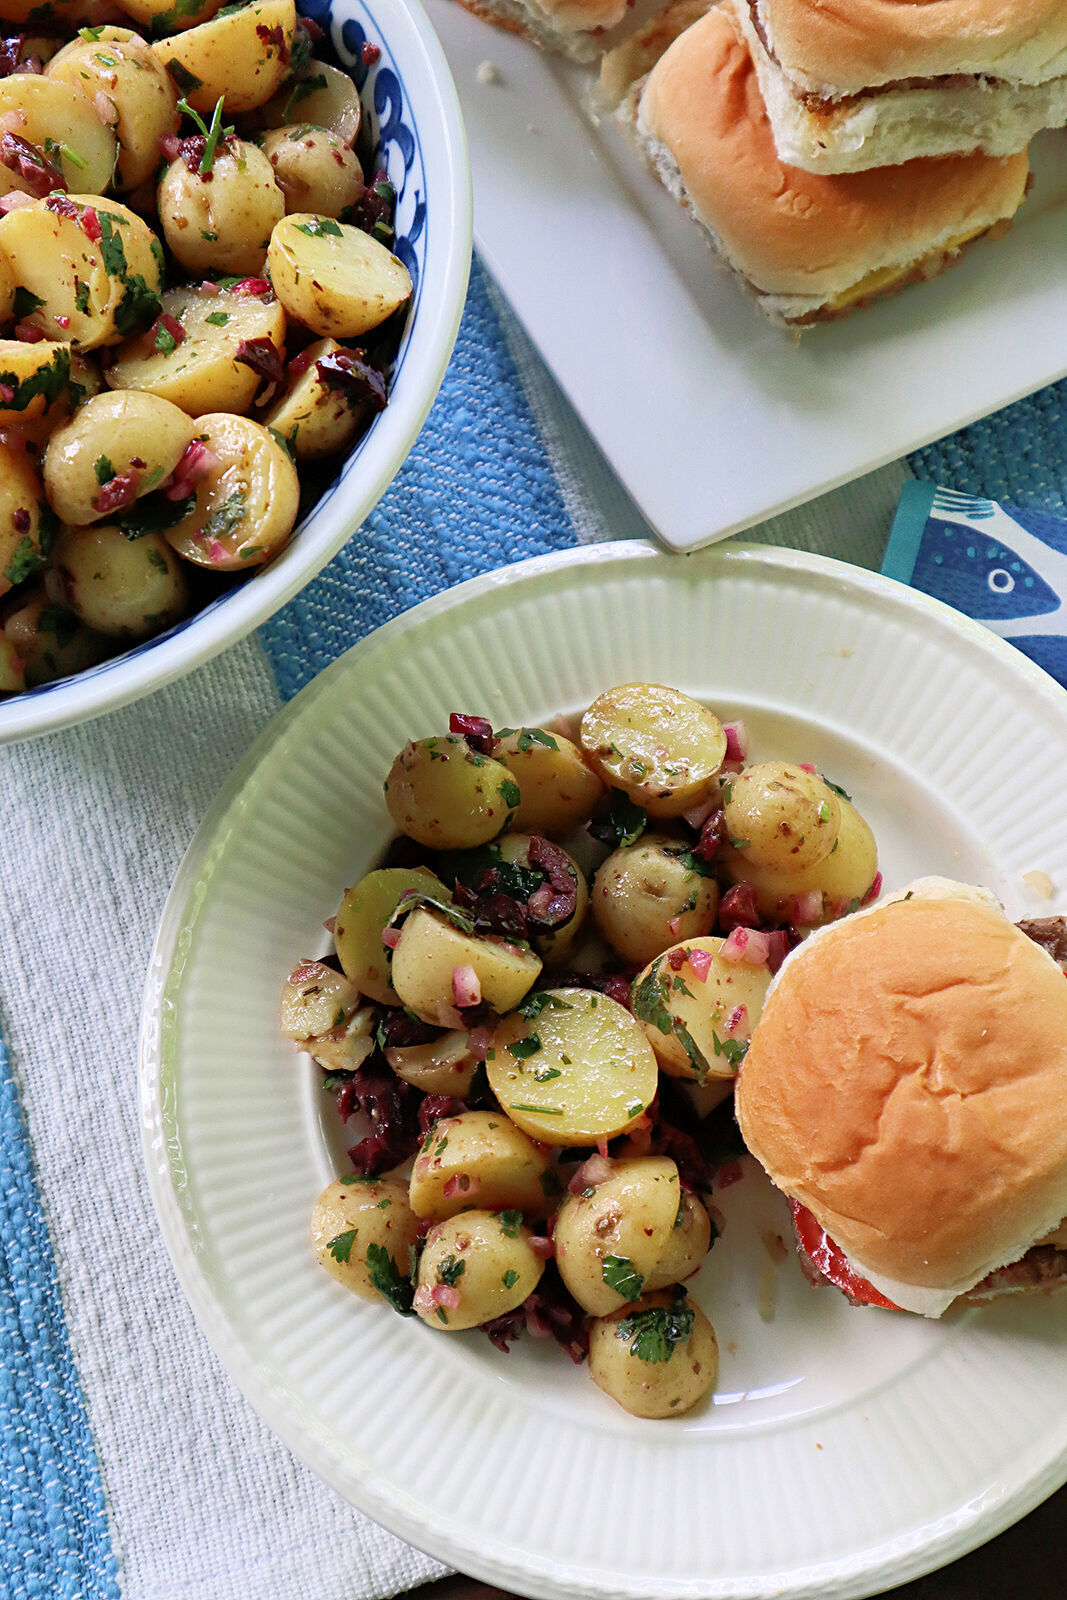 This Cypriot-style potato salad is made with olives, mint, lemon and olive instead of mayonnaise.